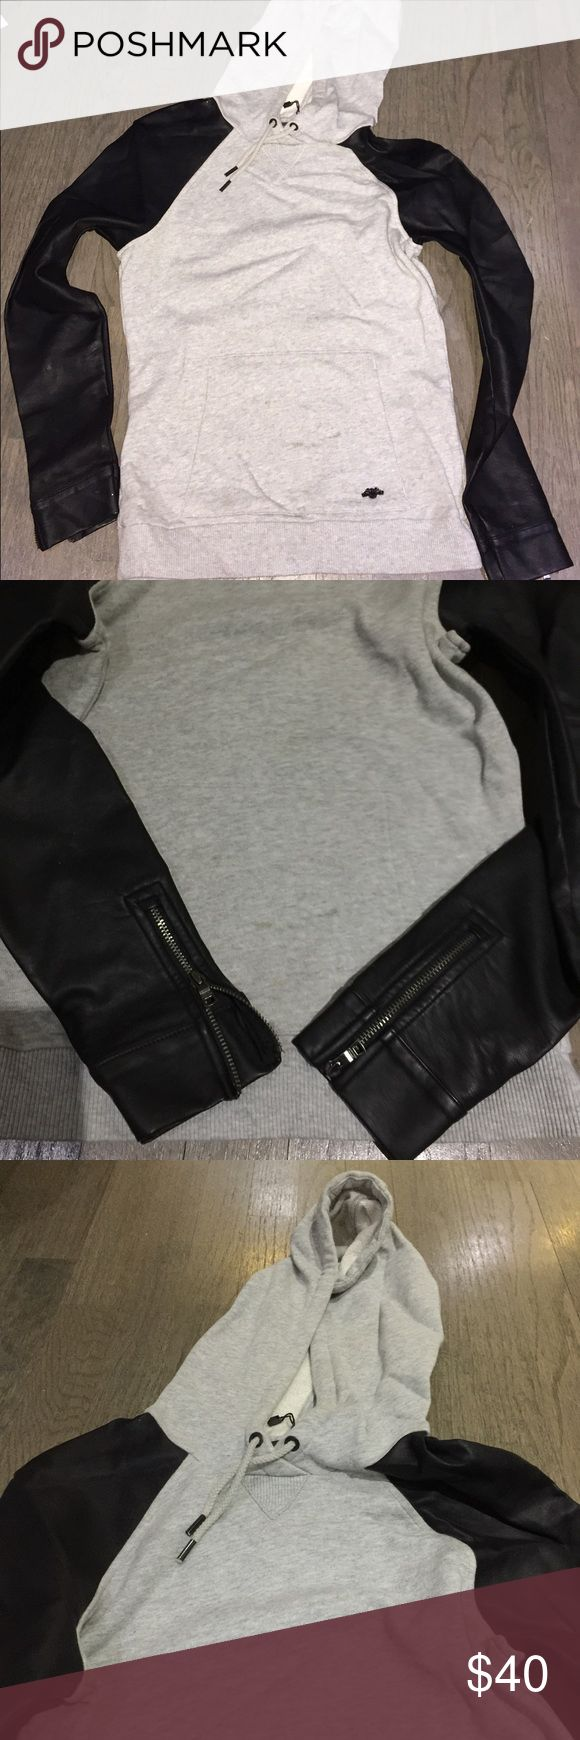 Selling this Armani Exchange Faux Leather sleeve hoodie on Poshmark! My username is: lmdavidsons1. #shopmycloset #poshmark #fashion #shopping #style #forsale #Armani Exchange #Tops